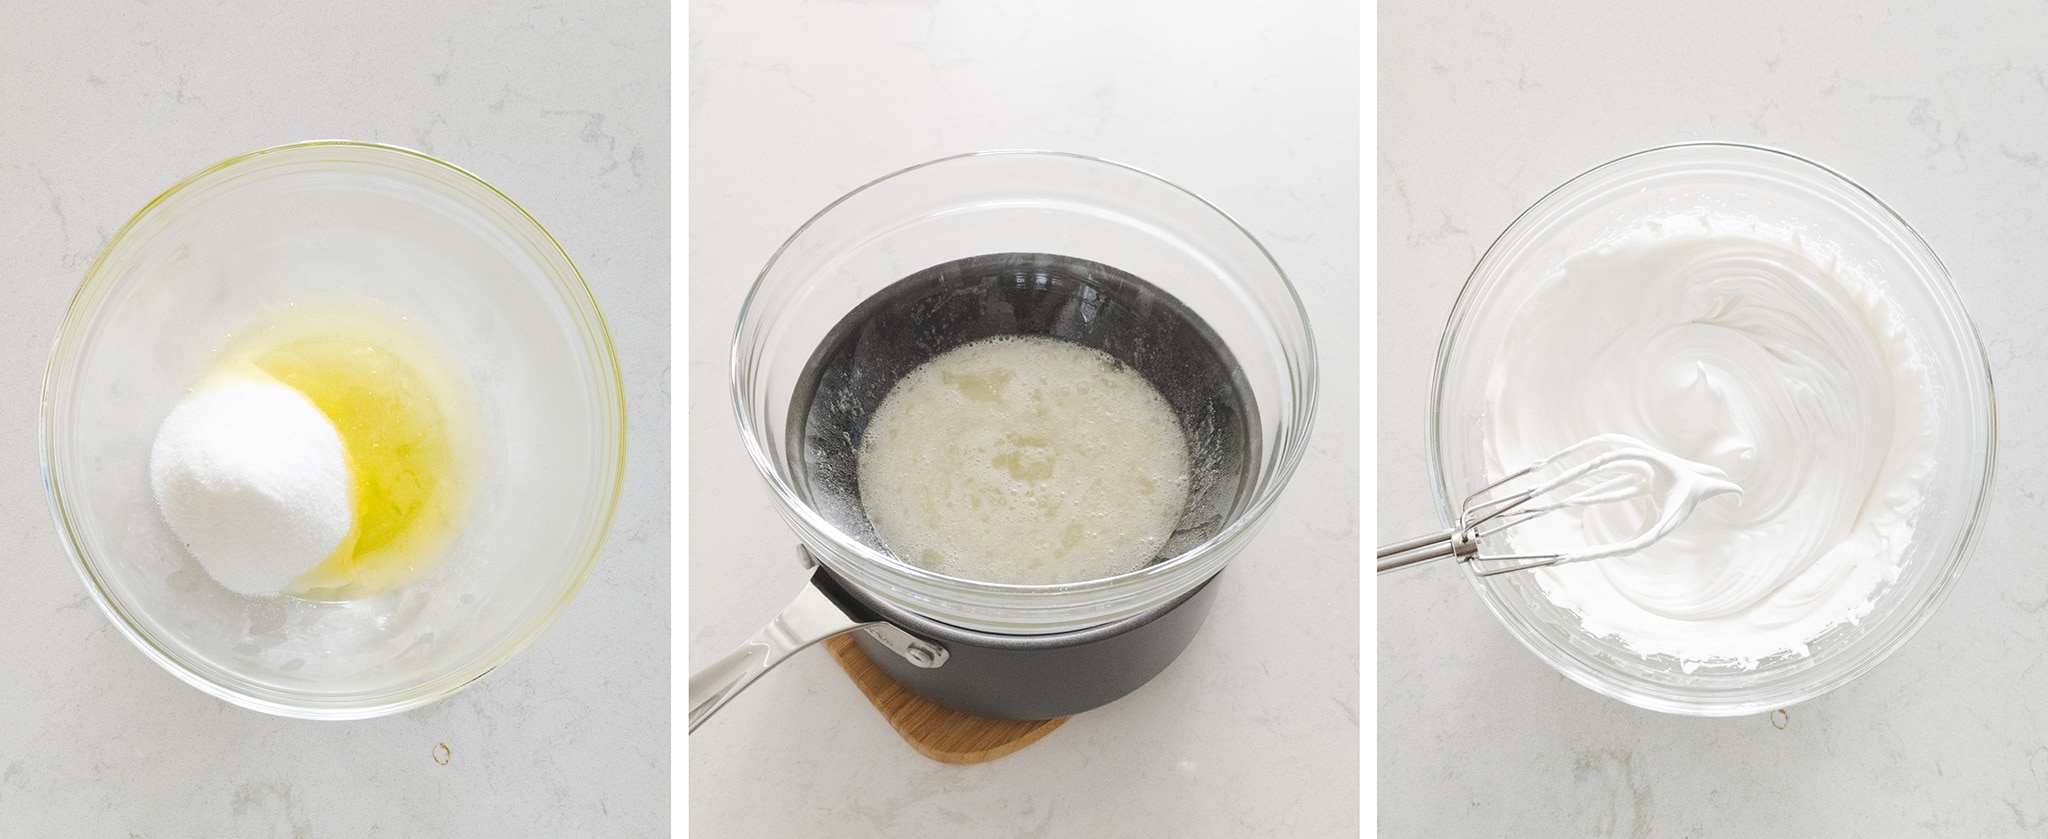 Heating and whipping egg whites into a meringue